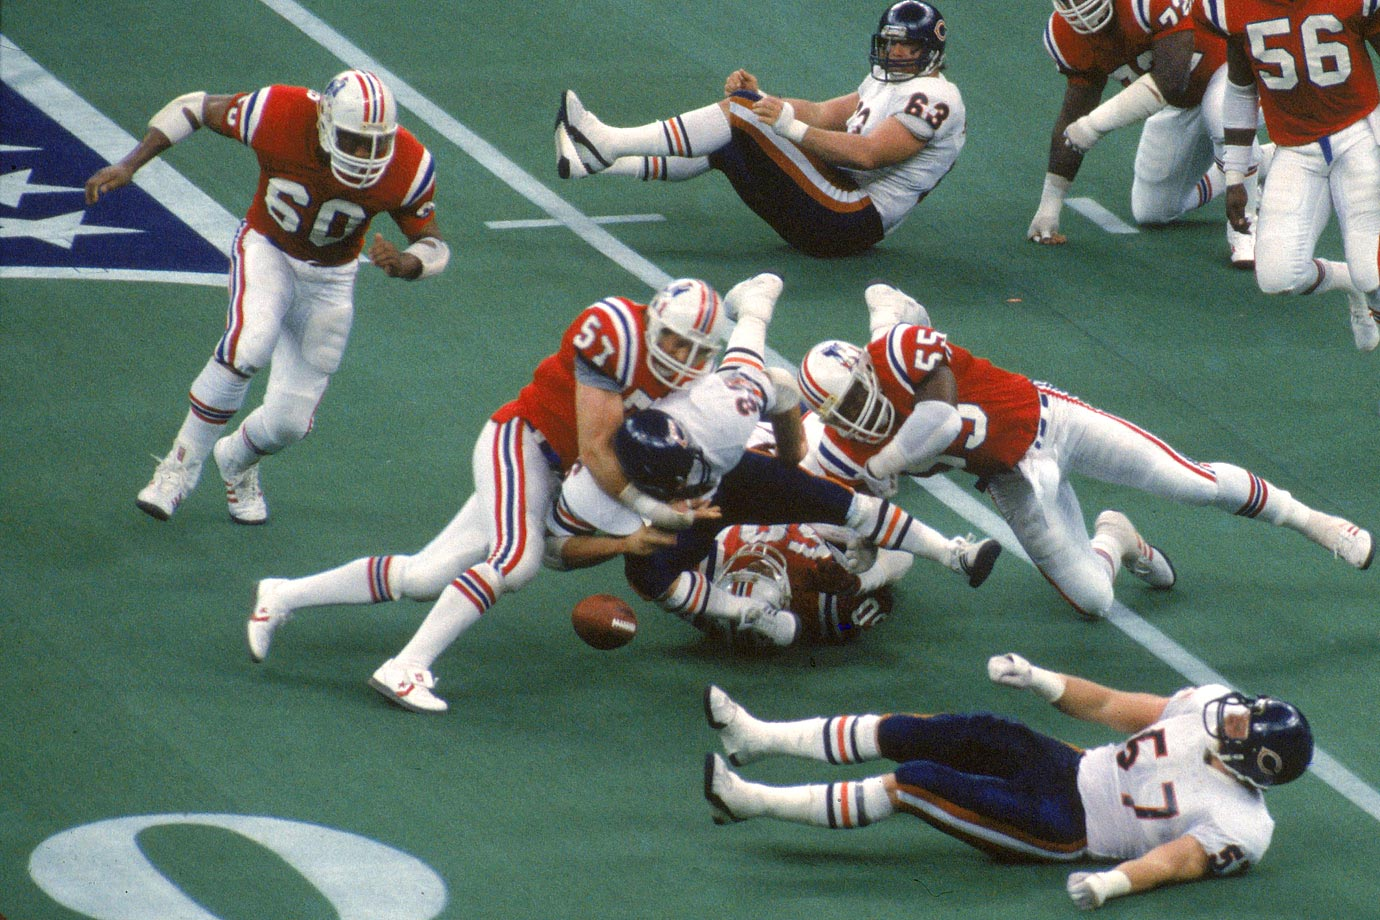 Nelson (57) was a three-time All-Pro and only missed three games in his 14-year NFL career. The linebacker was twice named Team MVP and was part of the defense that led the Pats to Super Bowl XX.